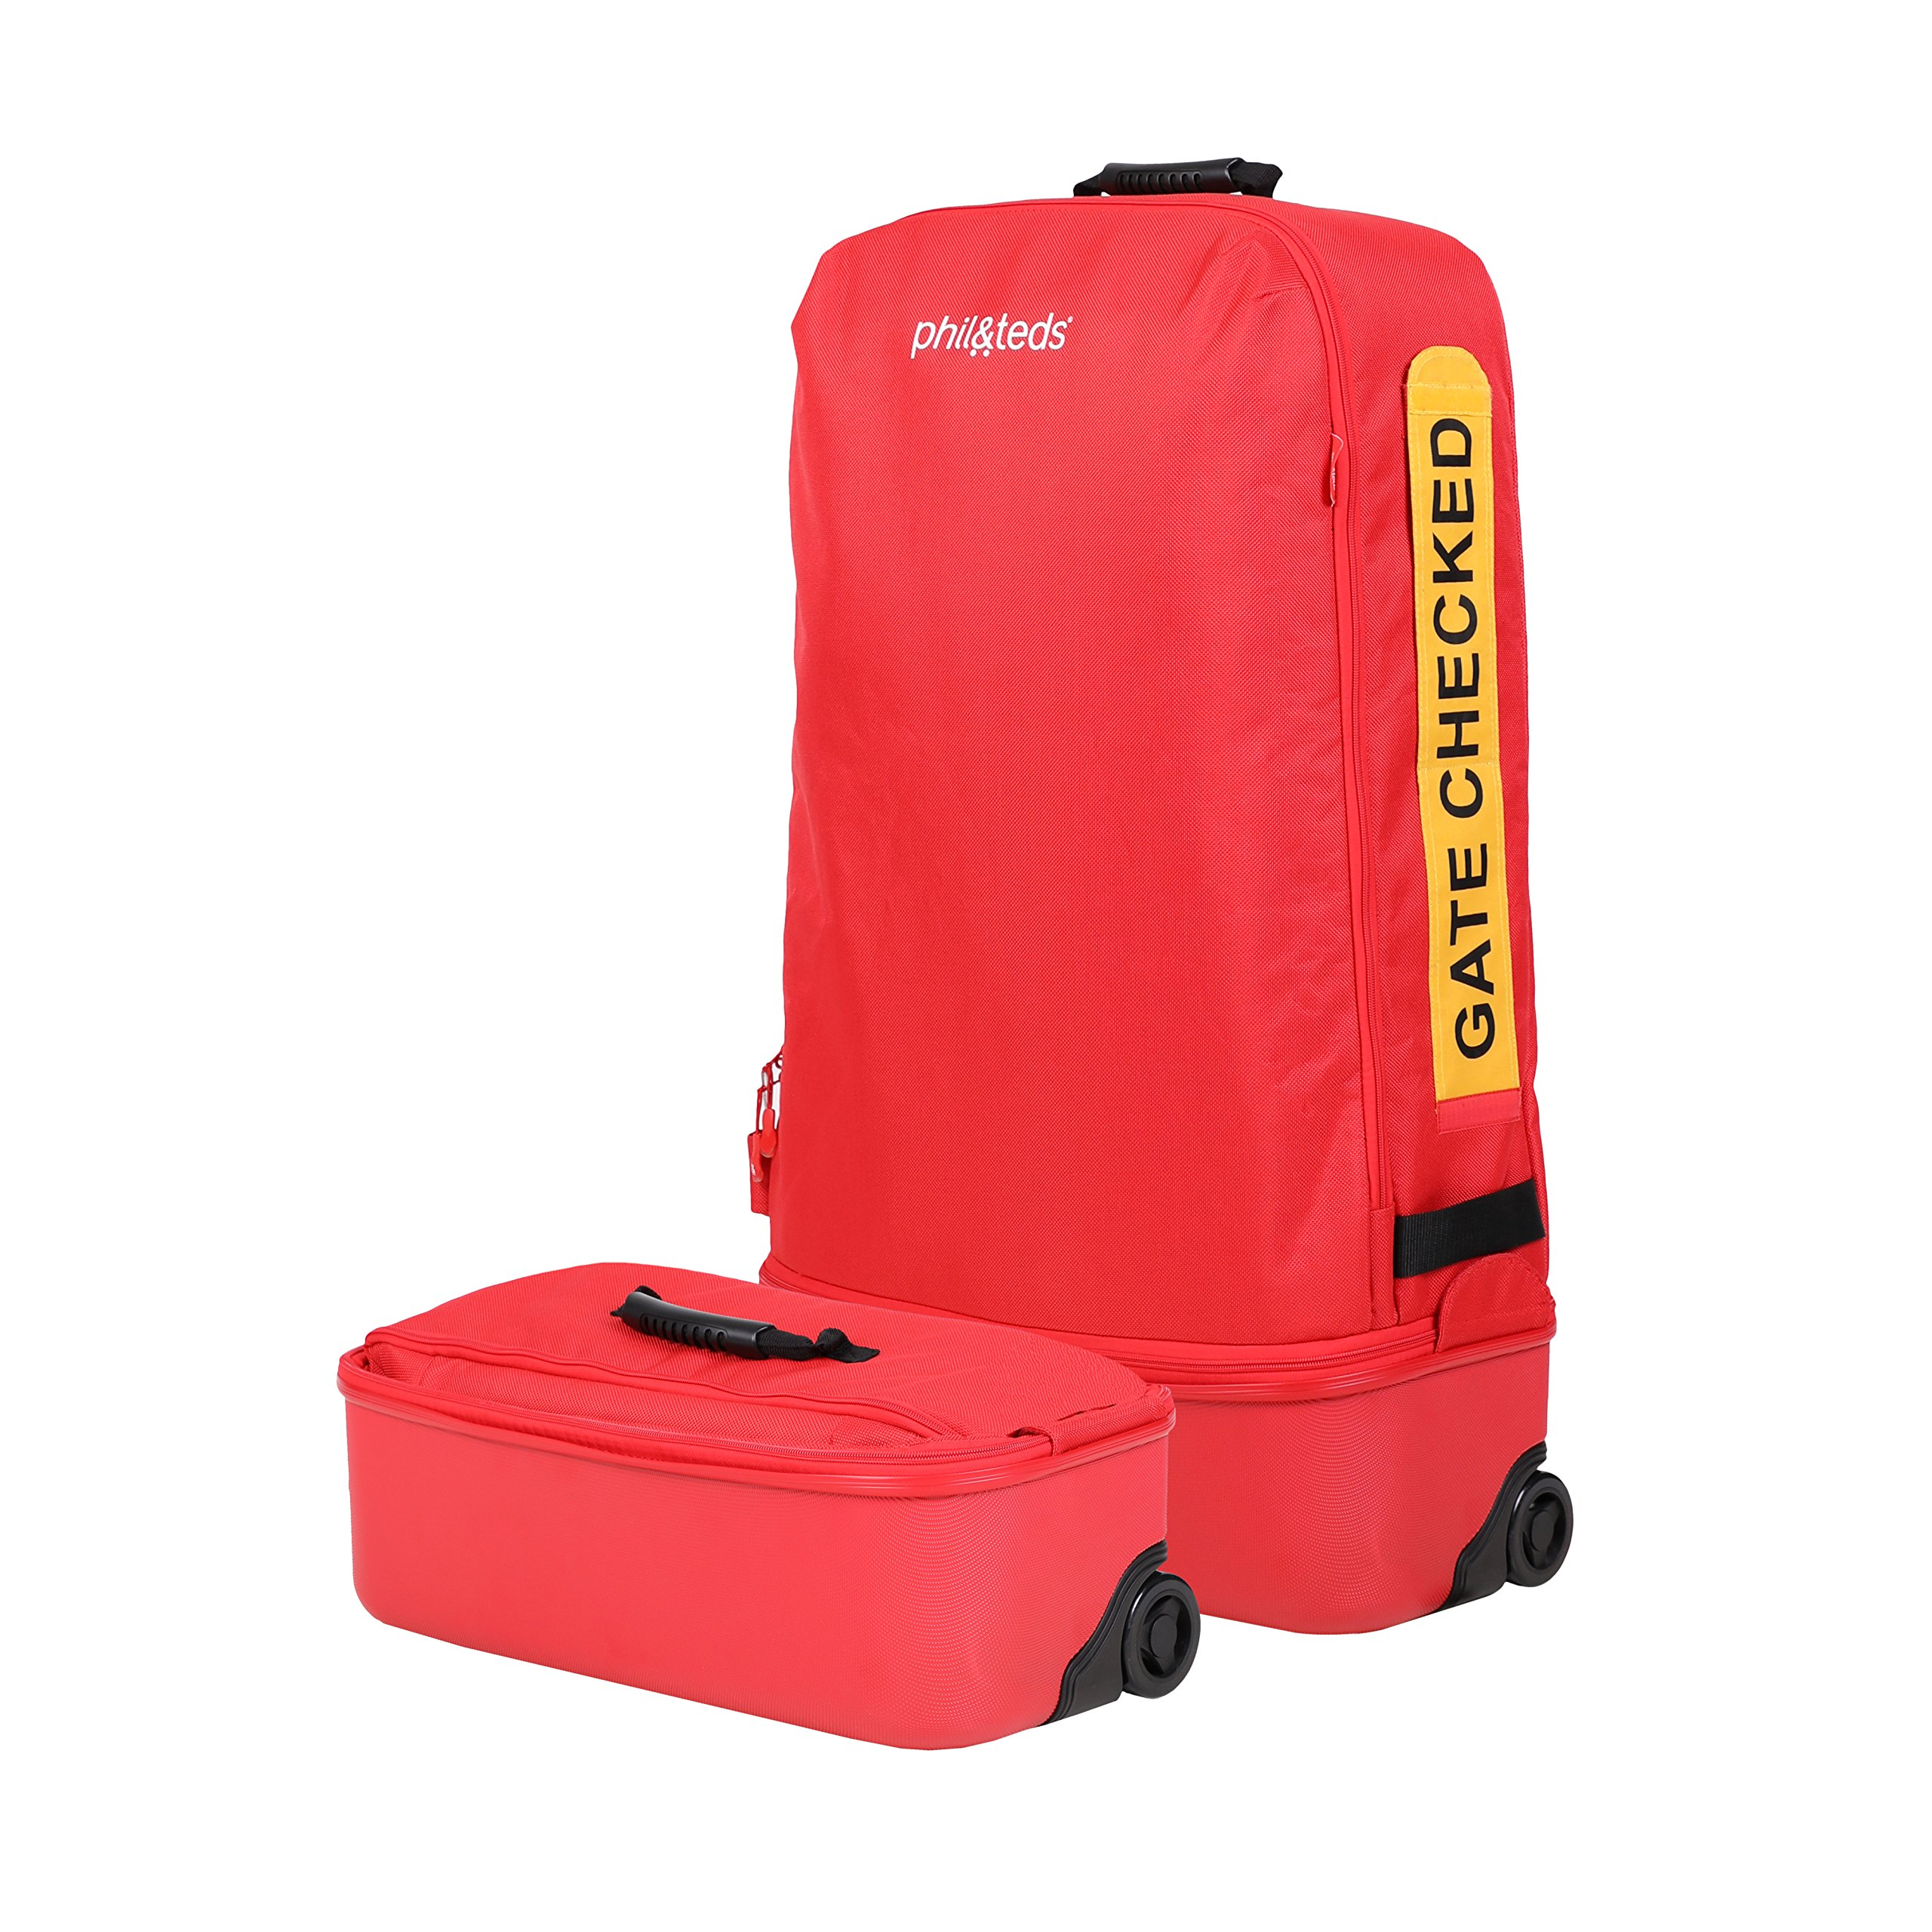 phil&teds Travel Bag for phil&teds, Mountain Buggy, Baby Jogger & britax Strollers by phil&teds (Image #1)